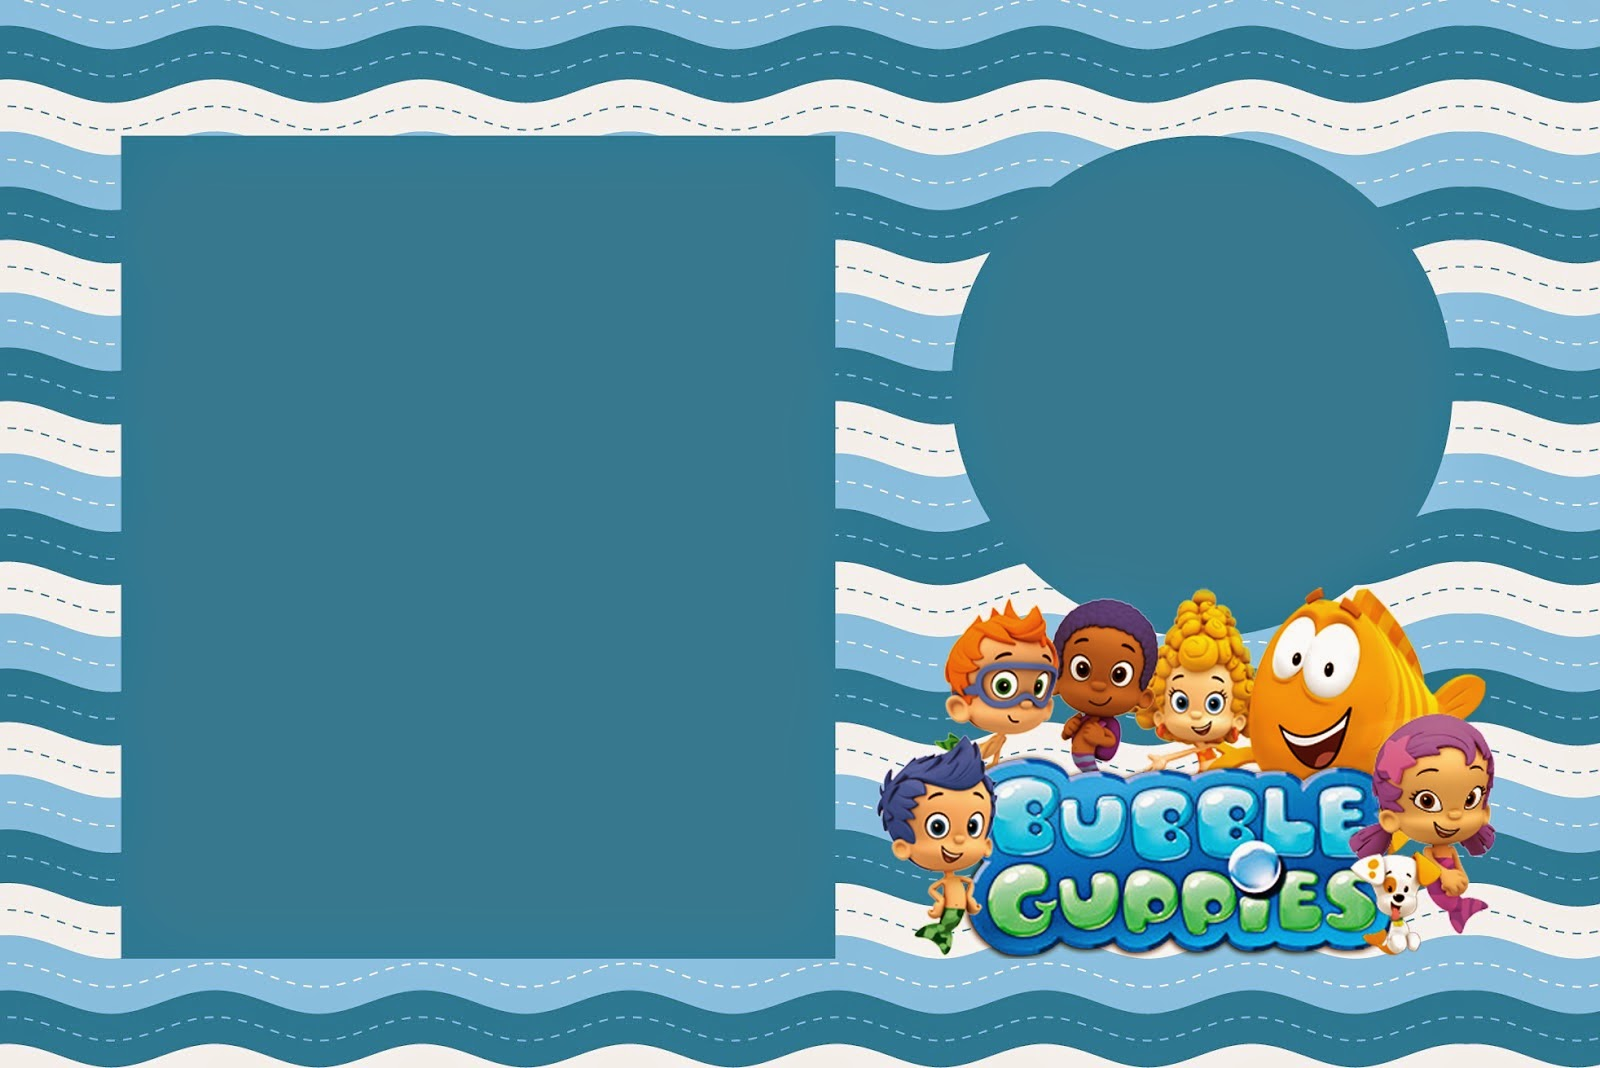 Bubble Guppies Free Printable Invitations – Bubble Guppies Party Invites